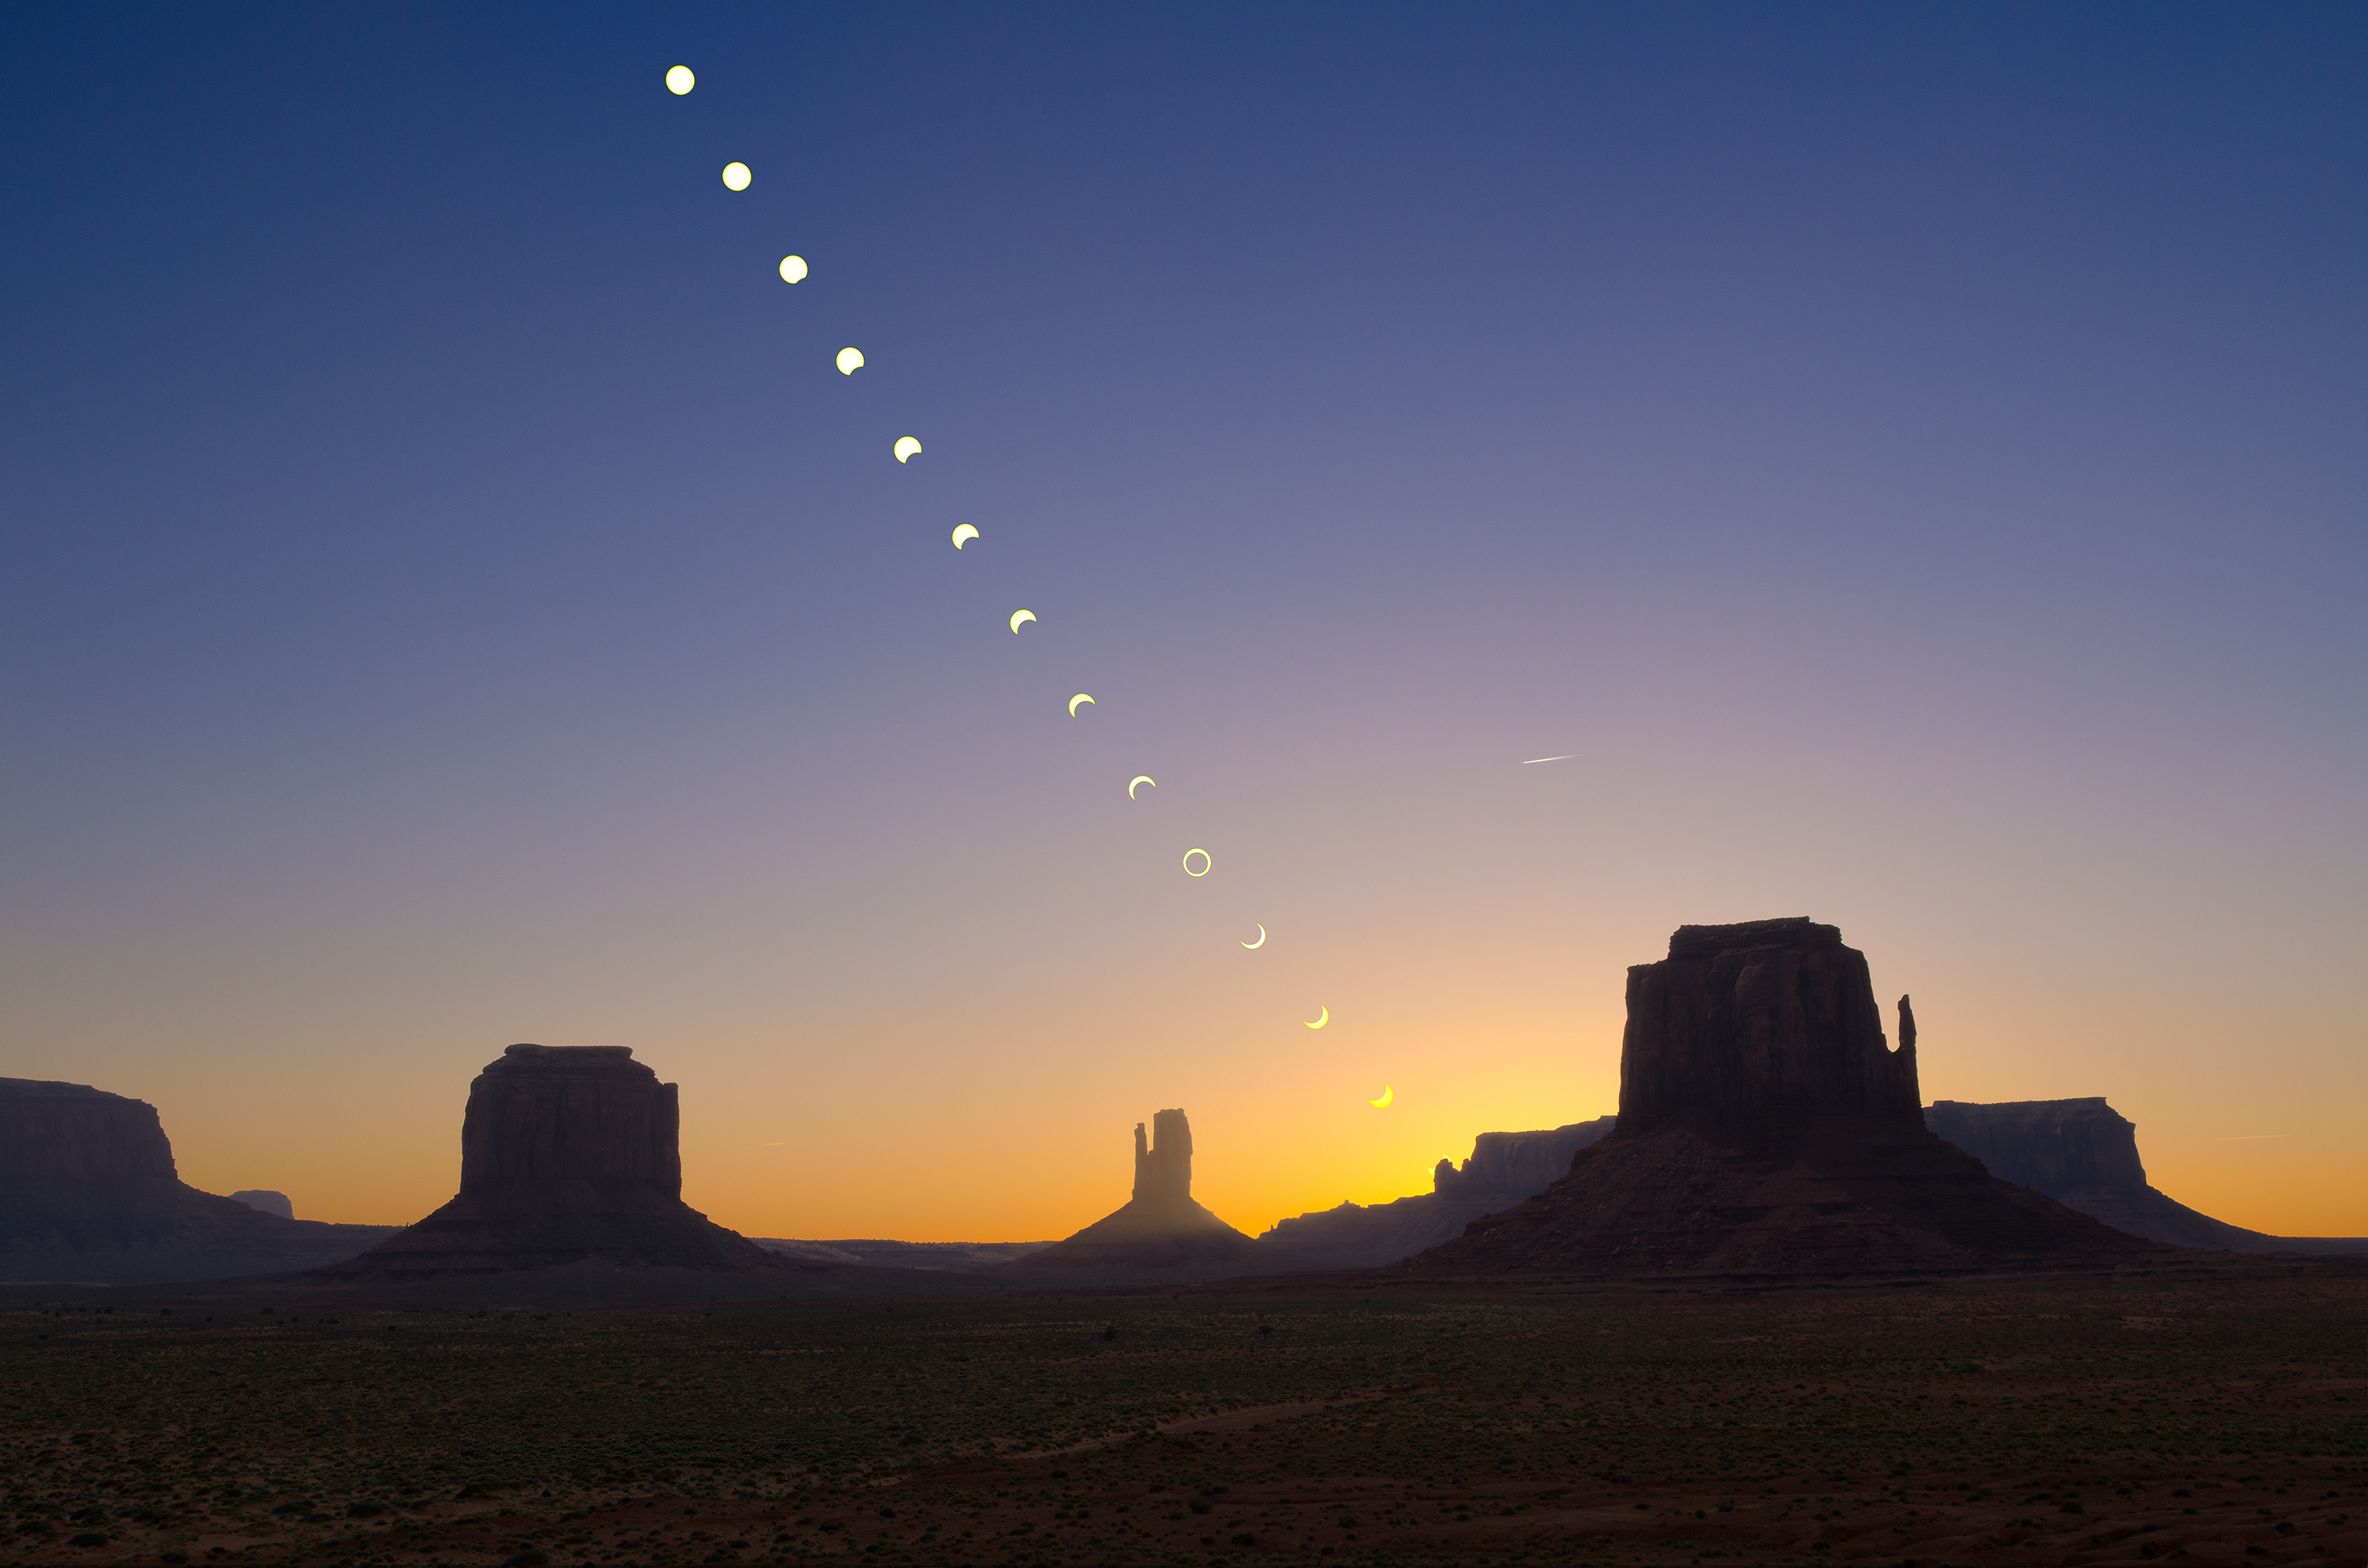 Eclipse; Monumet Valley, Arizona : Time-lapse showing phases of annular eclipse at Monument Valley, Arizona